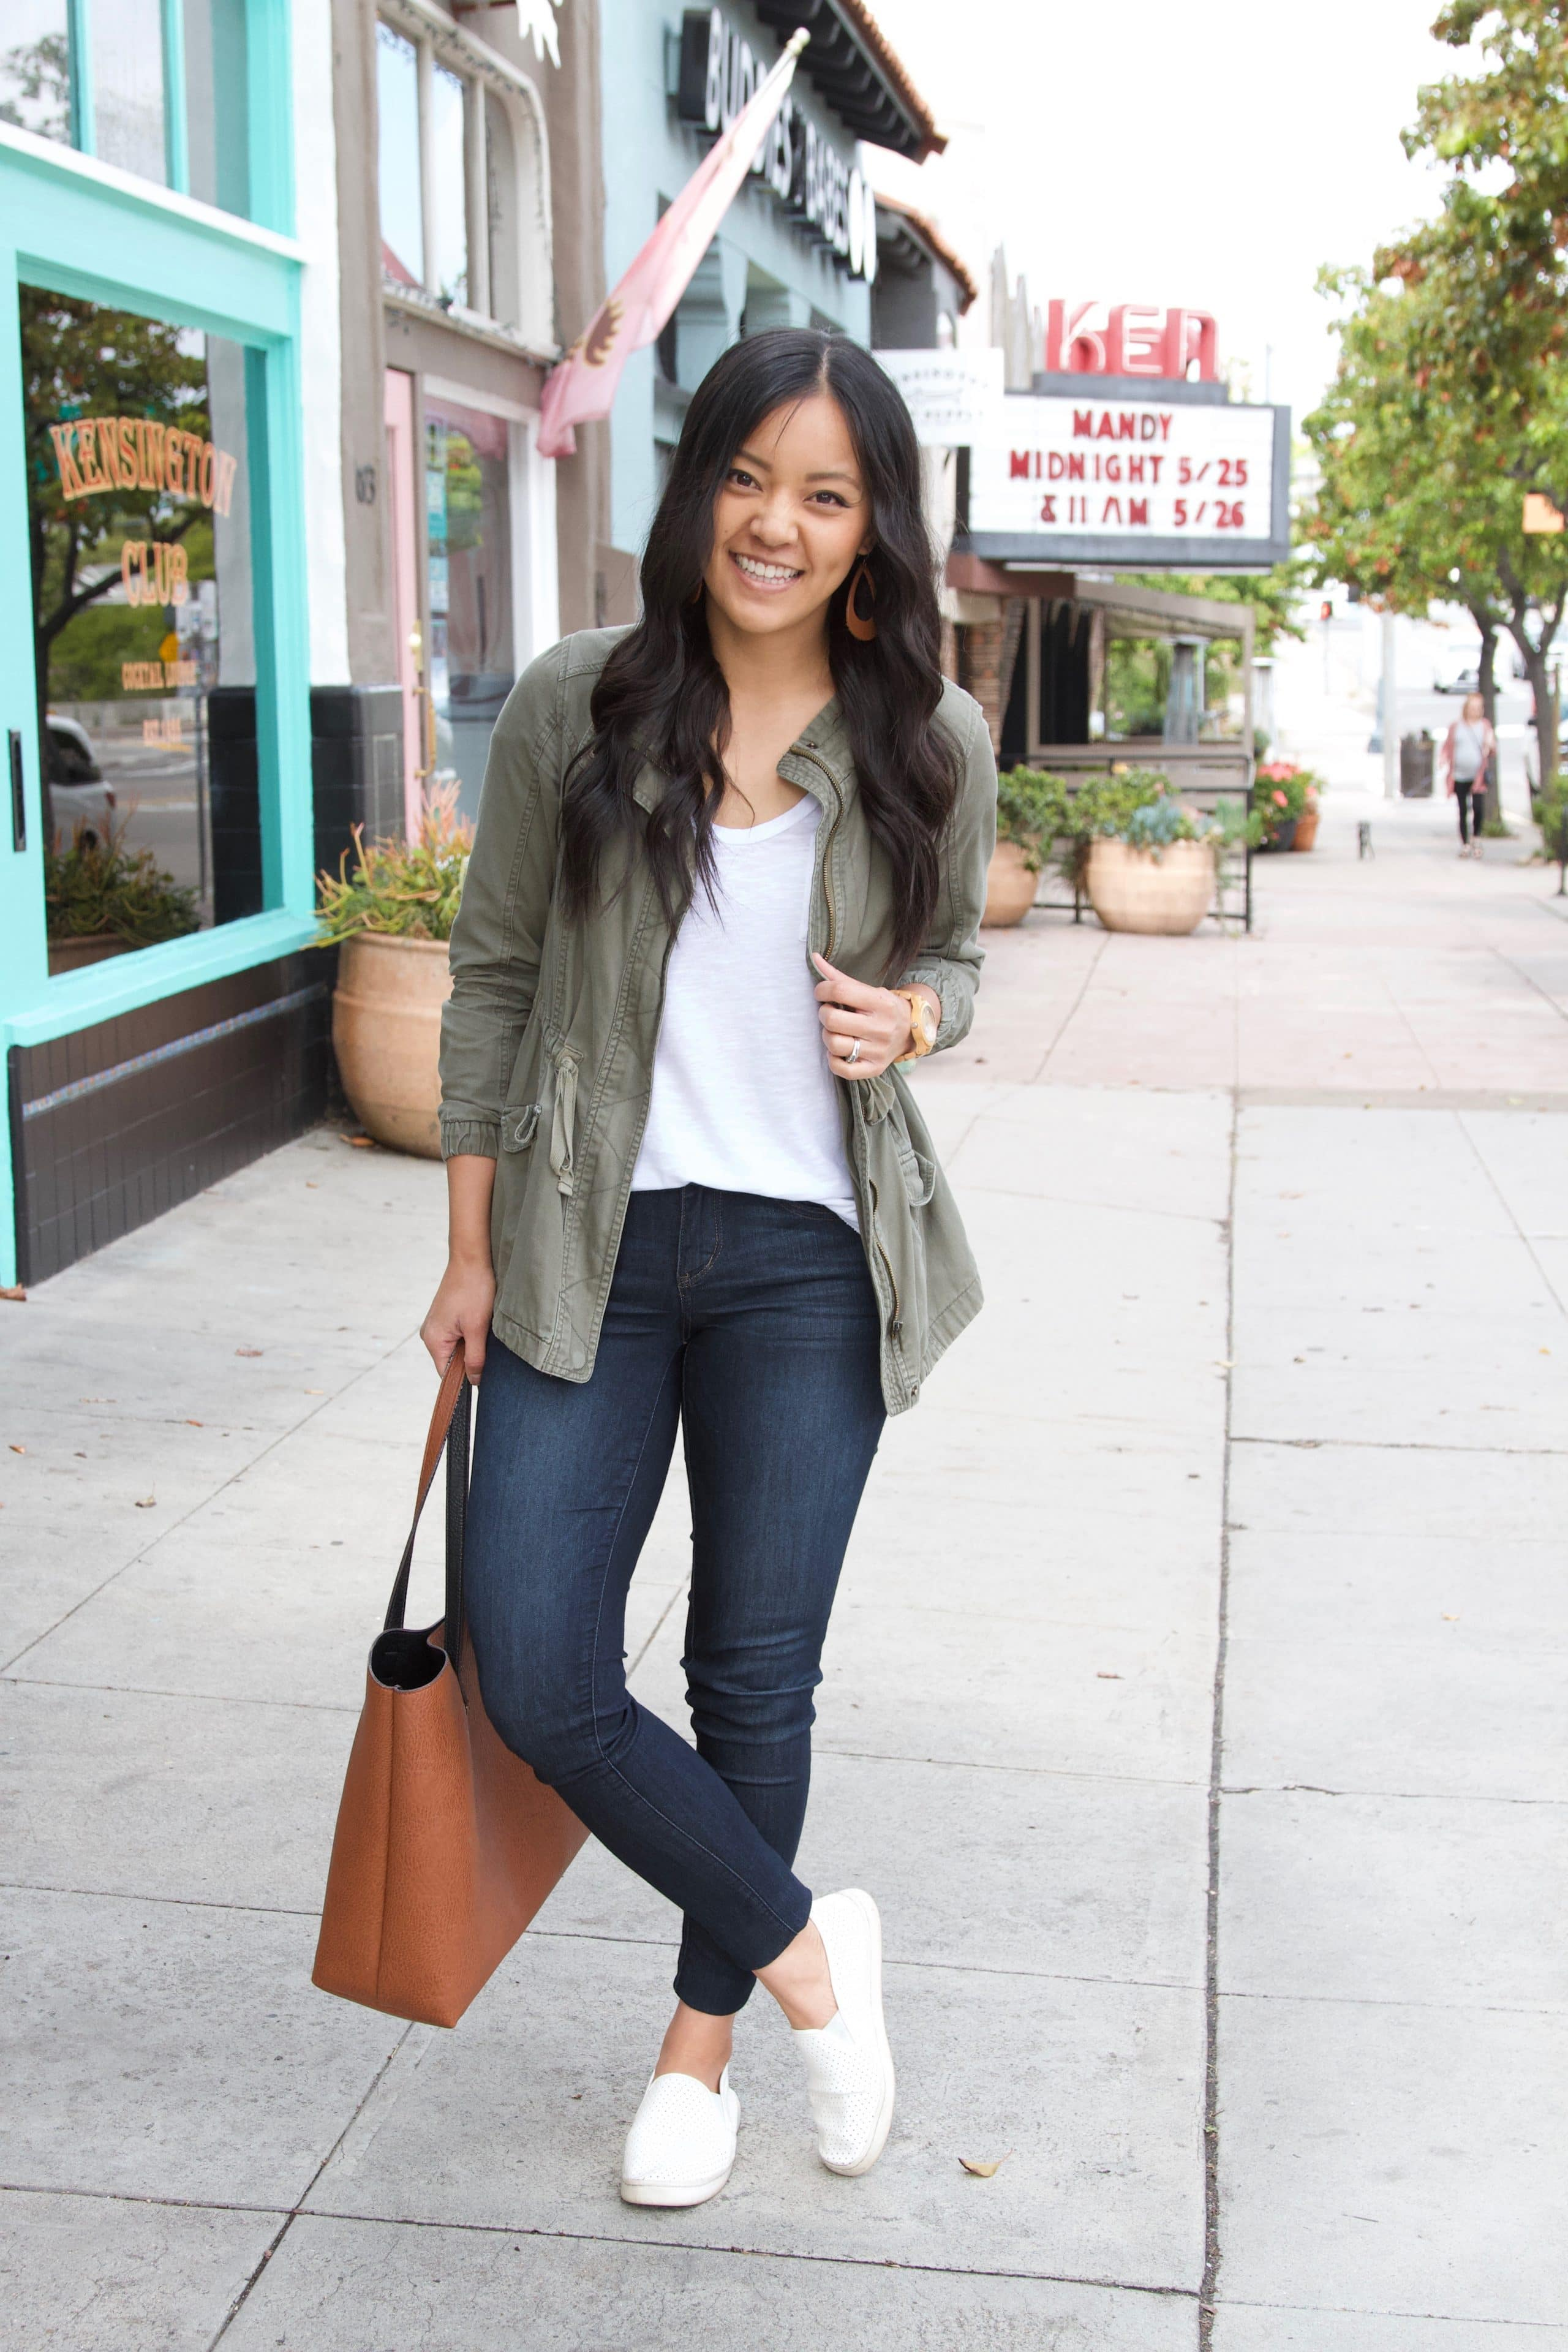 olive utility jacket + skinny jeans + white tee + white sneakers + brown tote